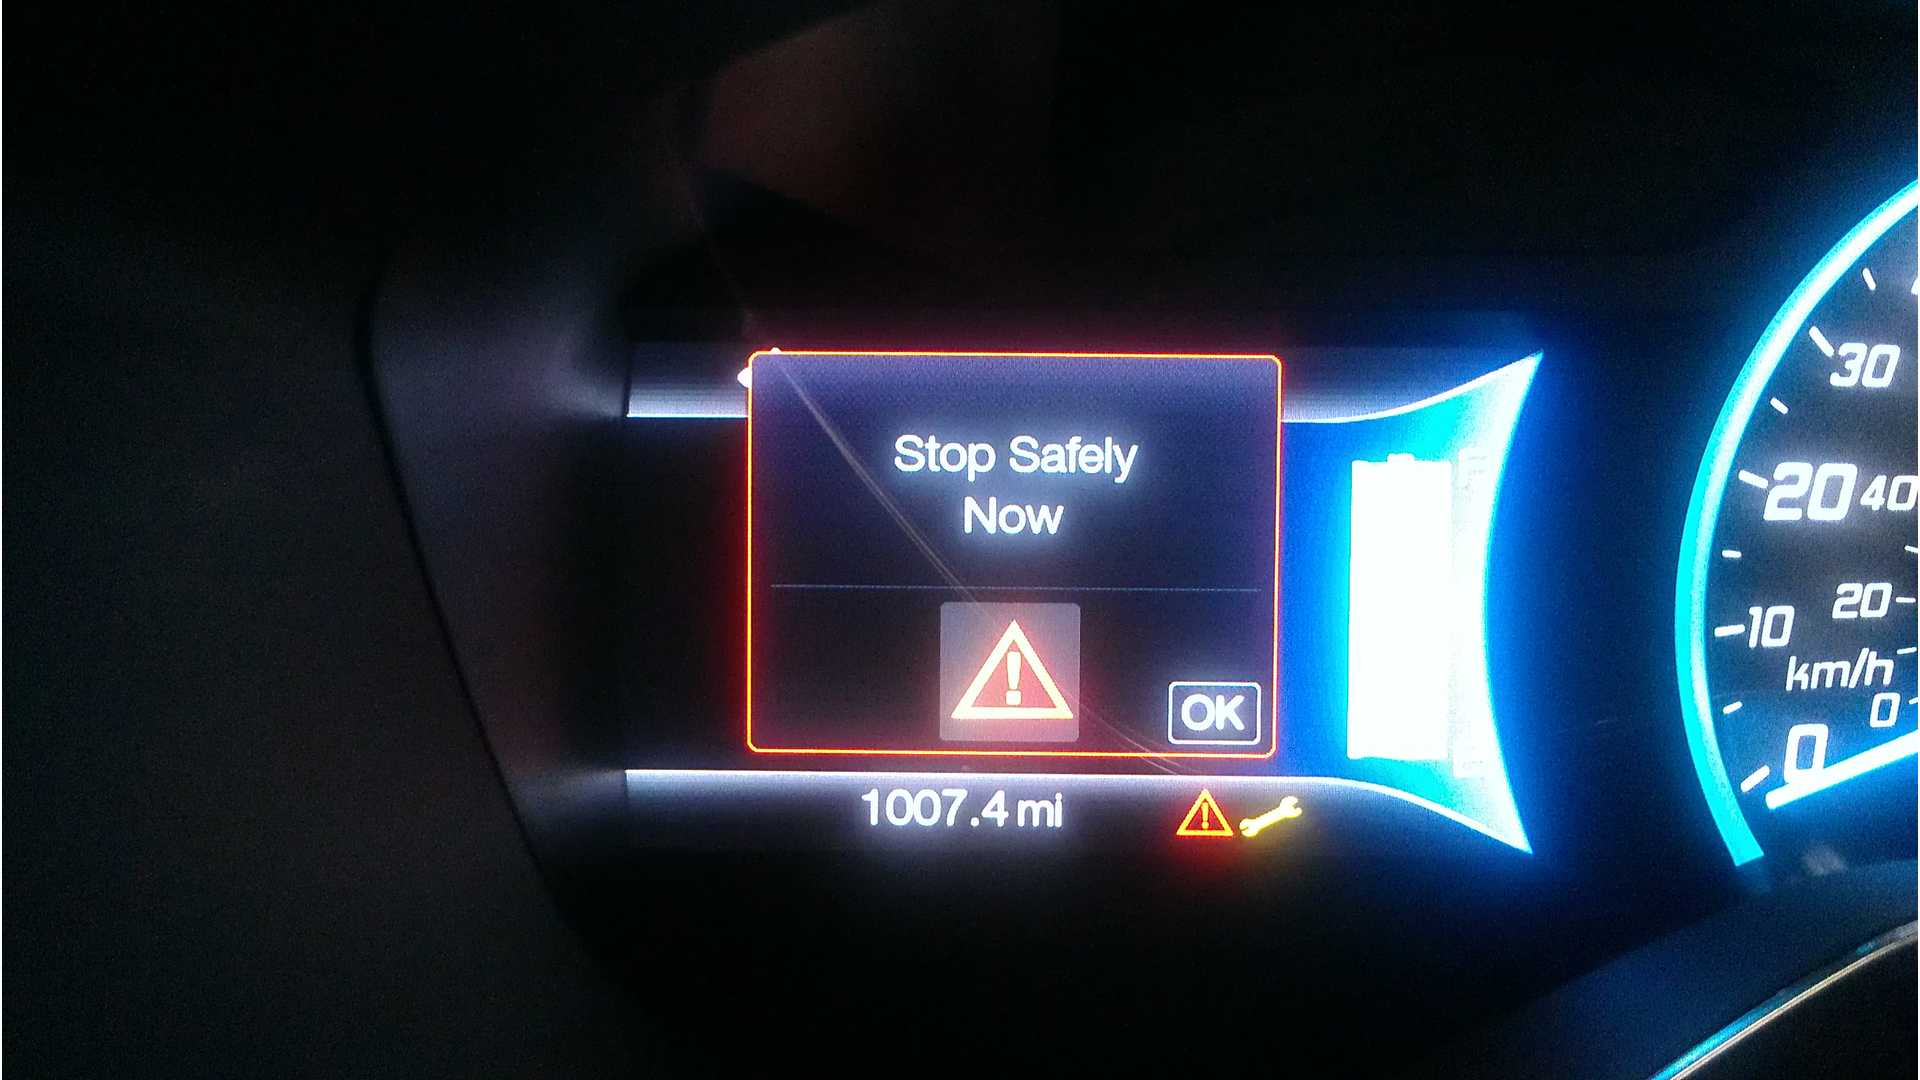 Ford Focus Electric Shutdown Problems While Driving Gets Official As Nhsta Investigates